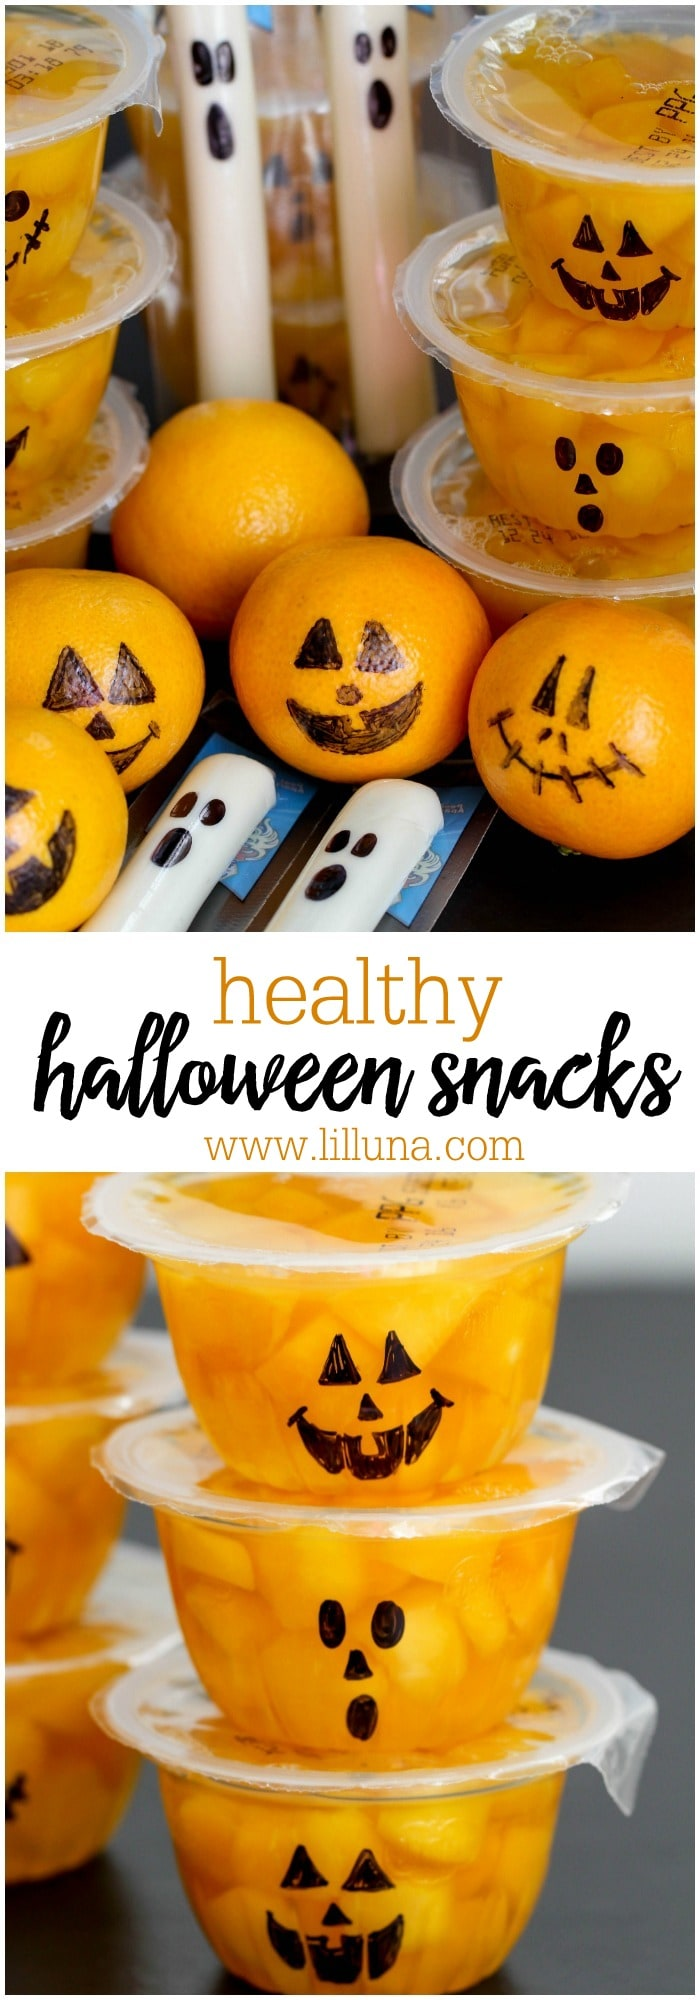 Healthy Halloween Snacks for Parties